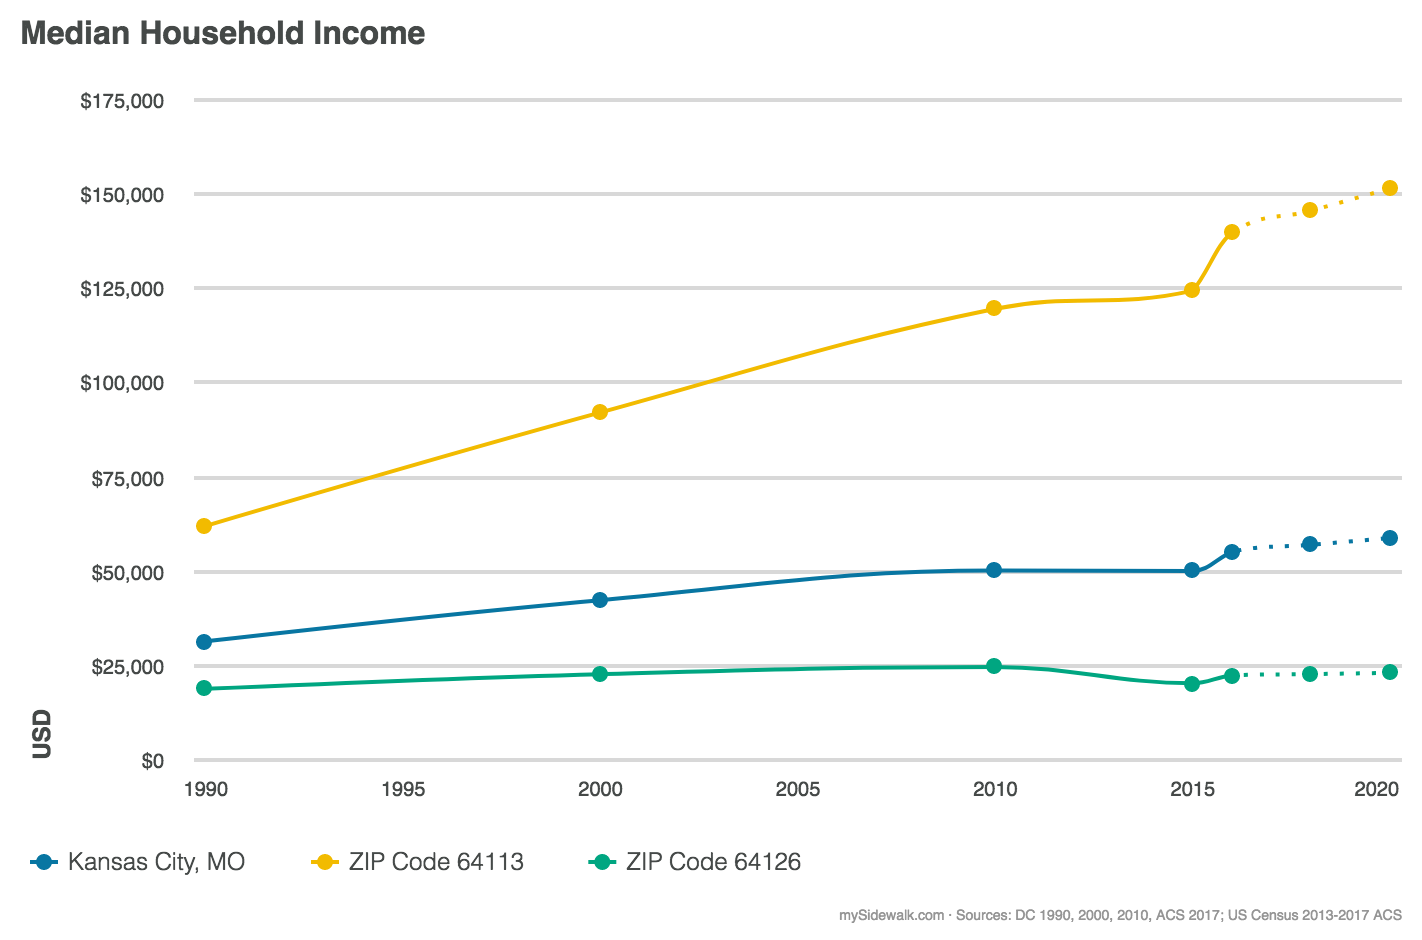 Chart of median household income in Kansas City showing a steep increase in one zip code versus others.